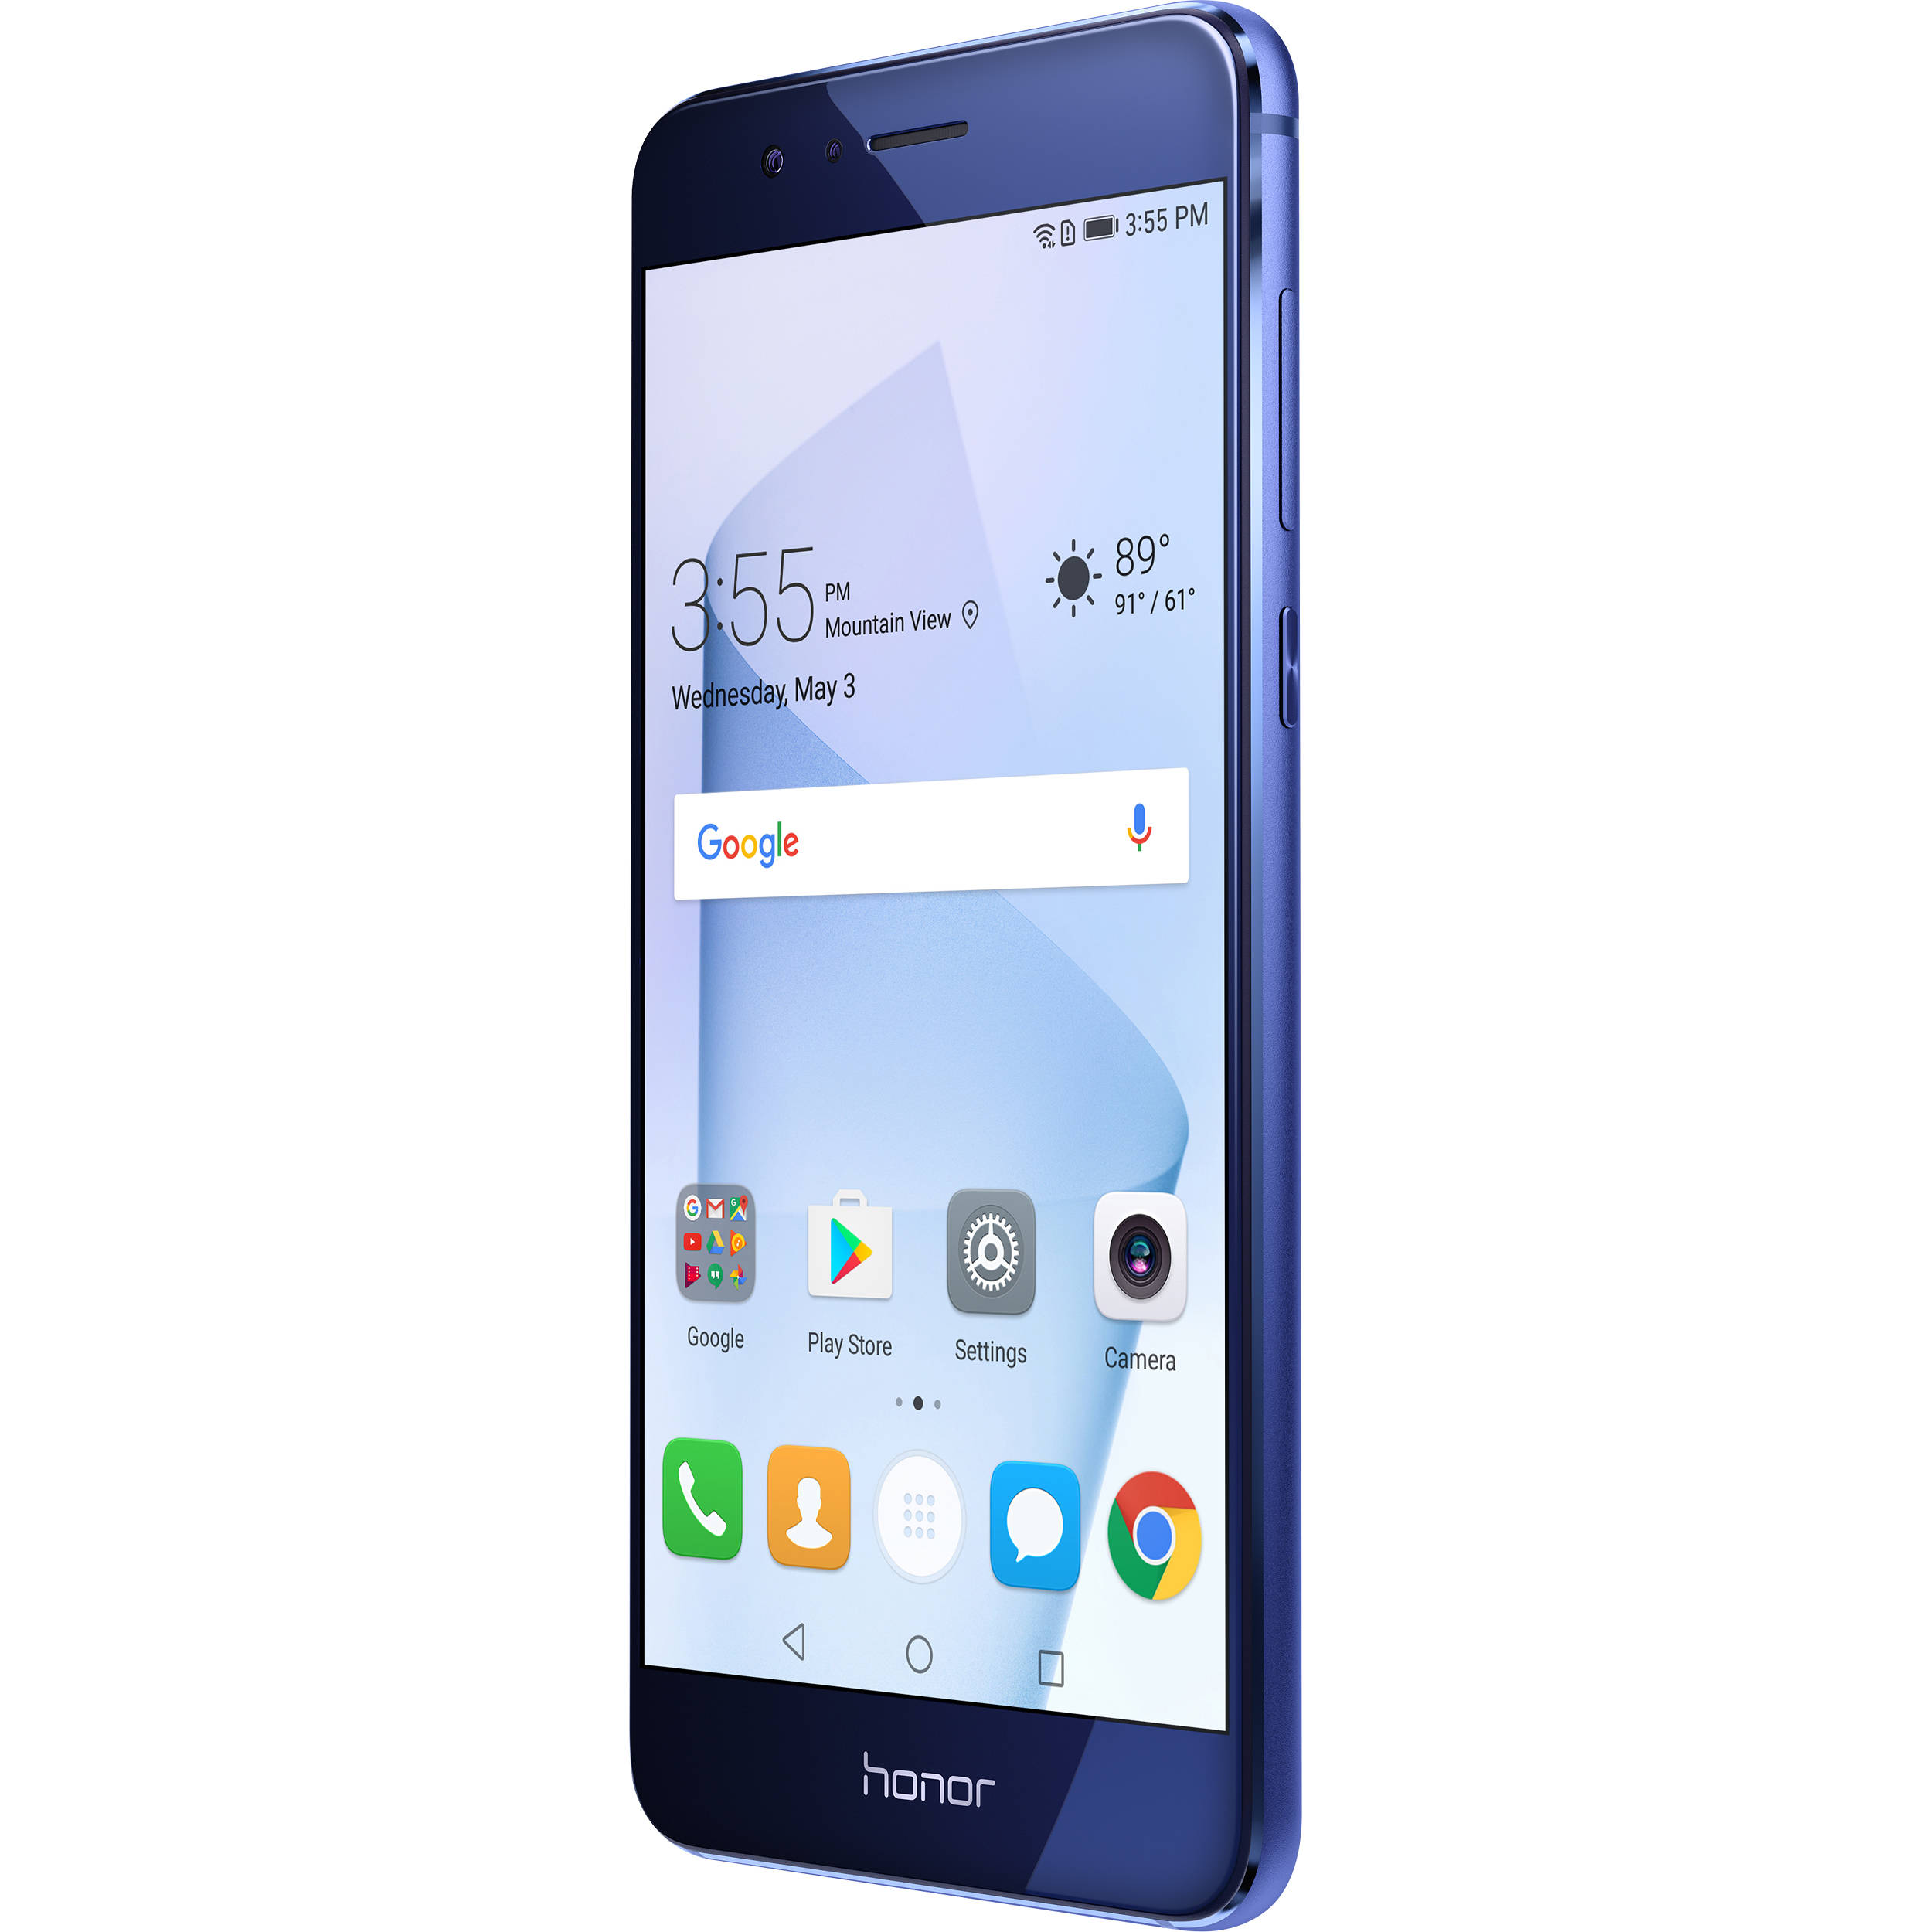 huawei honor 8 32gb smartphone unlocked sapphire blue. Black Bedroom Furniture Sets. Home Design Ideas